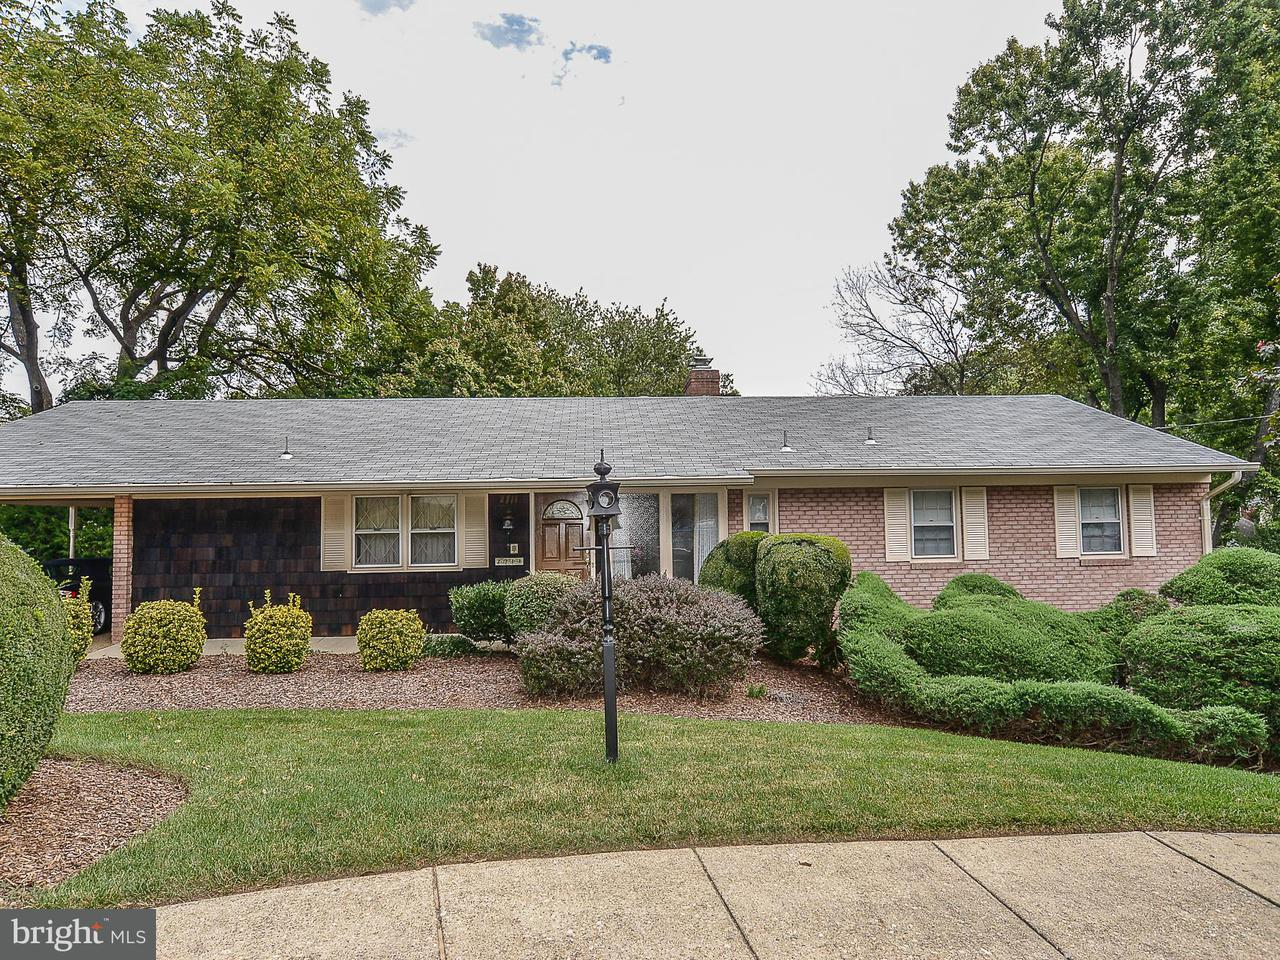 Single Family Home for Sale at 2711 KENSINGTON Street 2711 KENSINGTON Street Arlington, Virginia 22207 United States